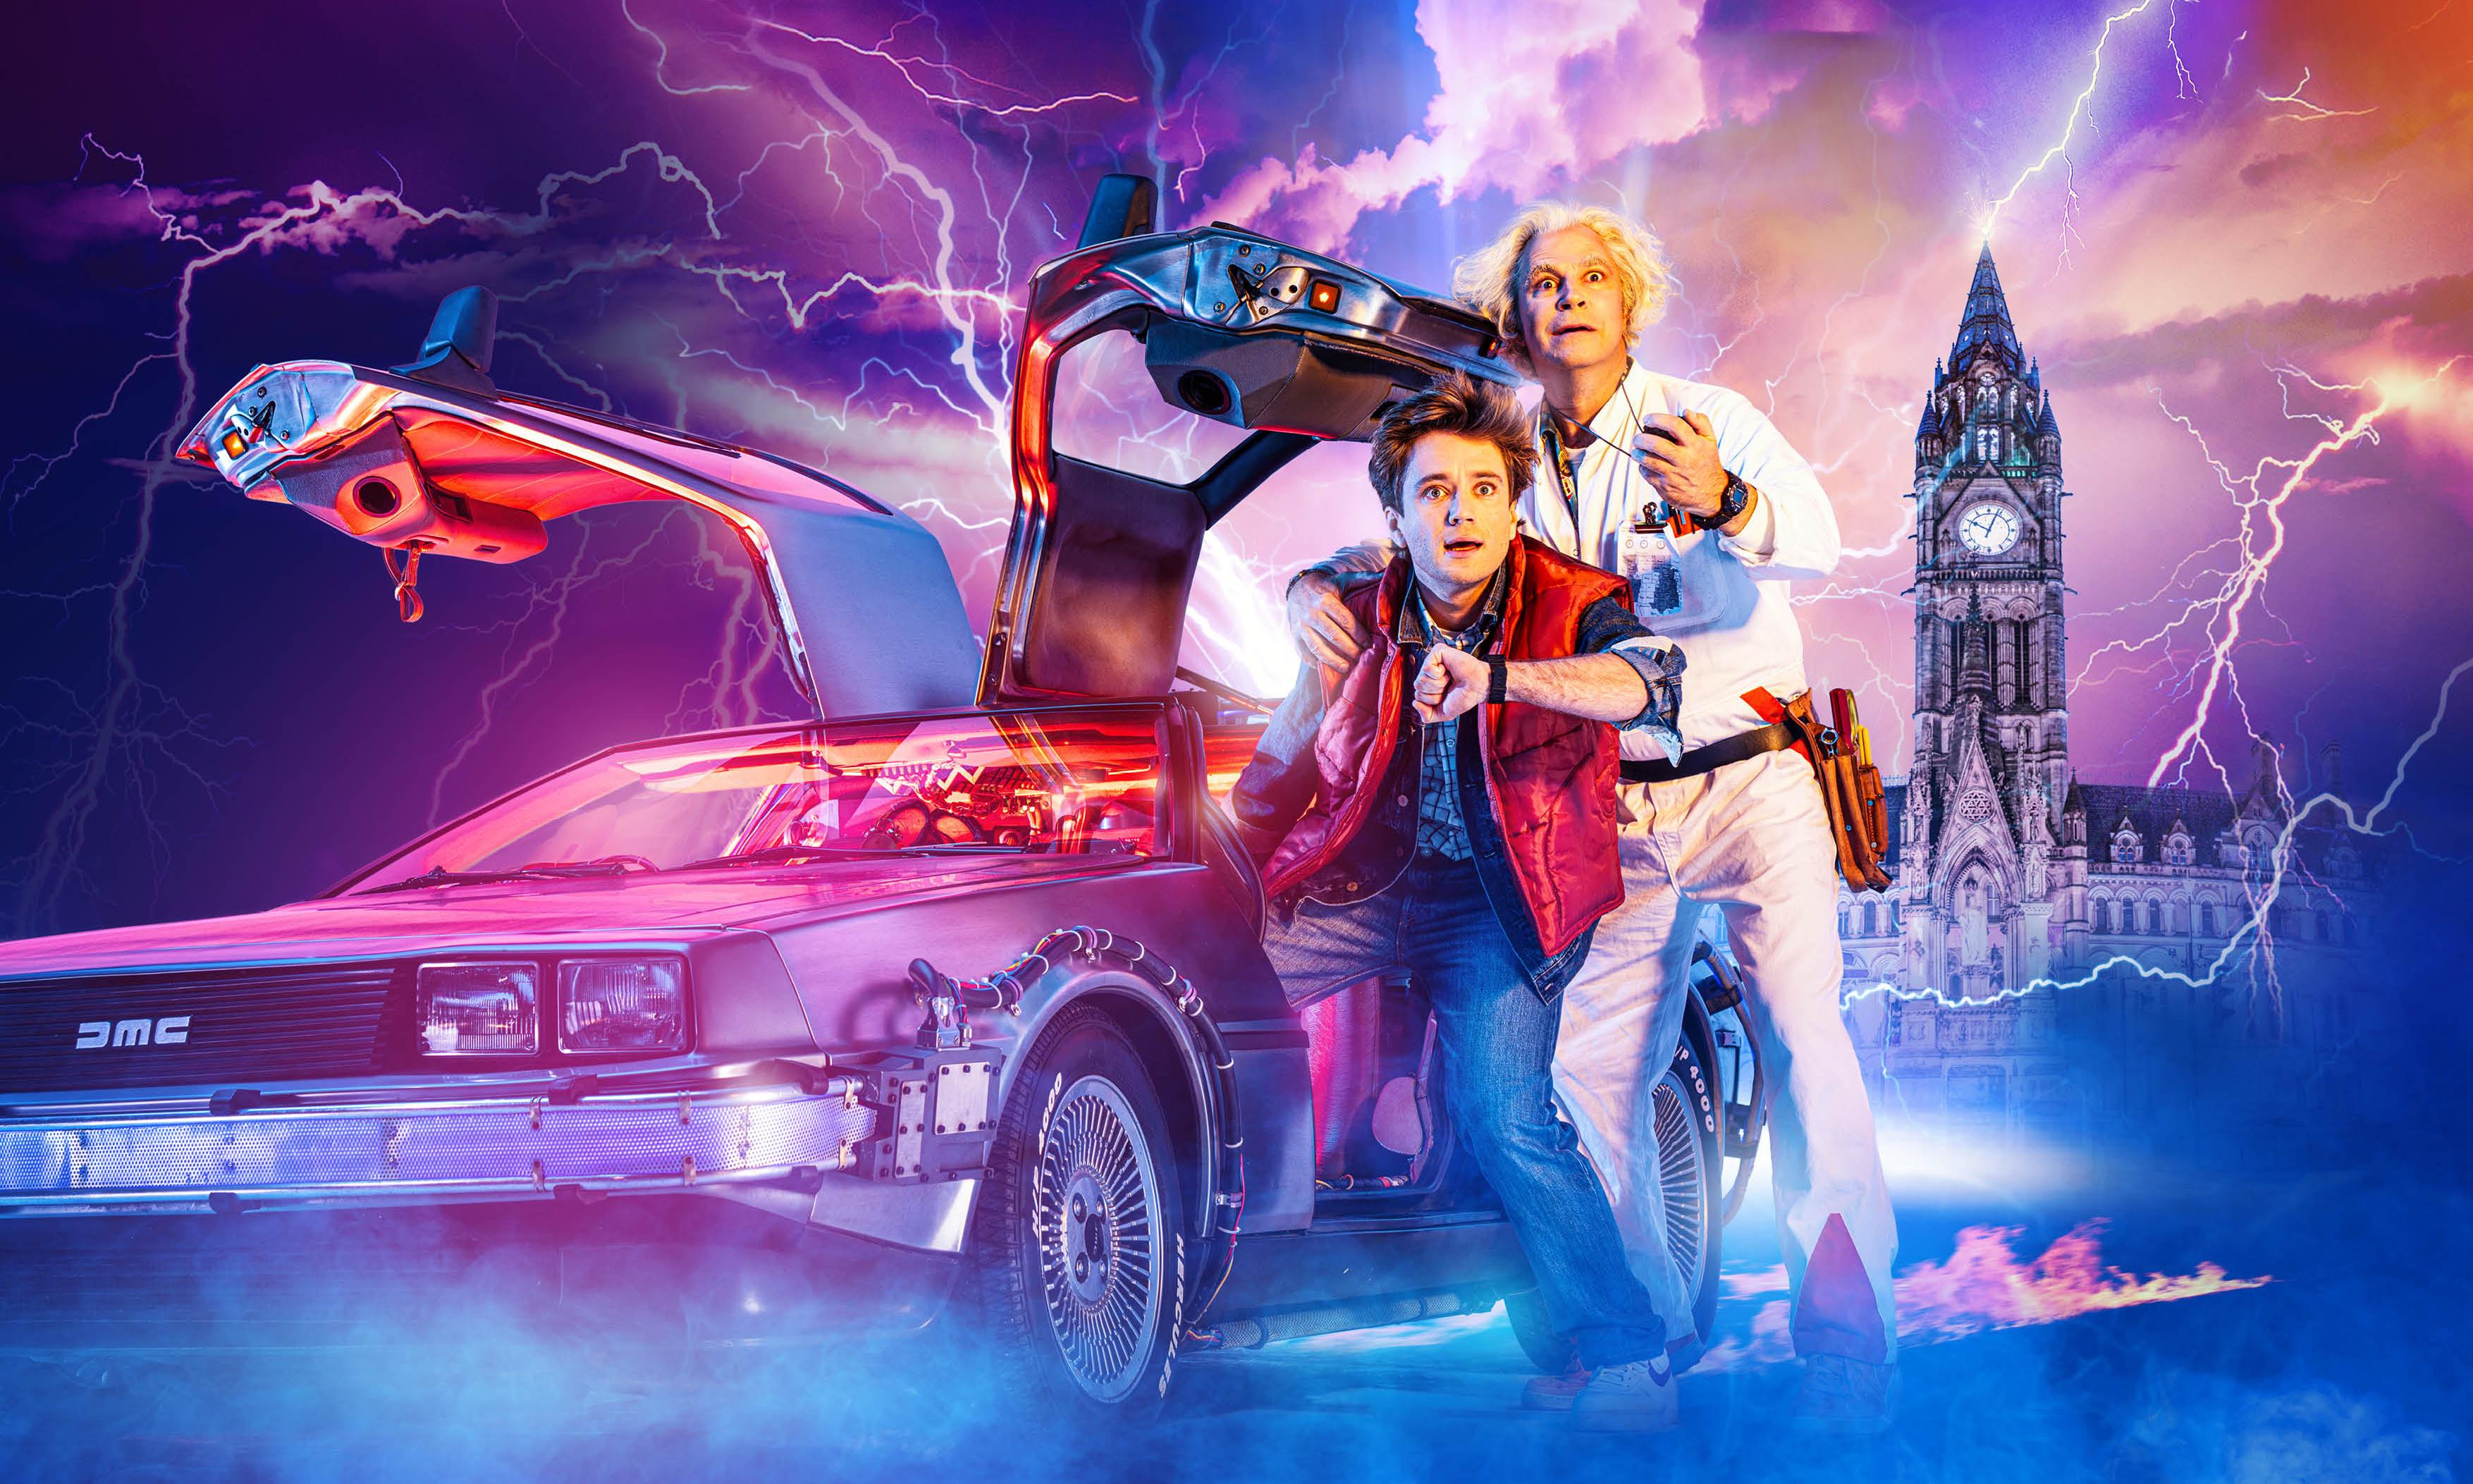 'This is the new standard for spectacle': fans react to the Back to the Future musical